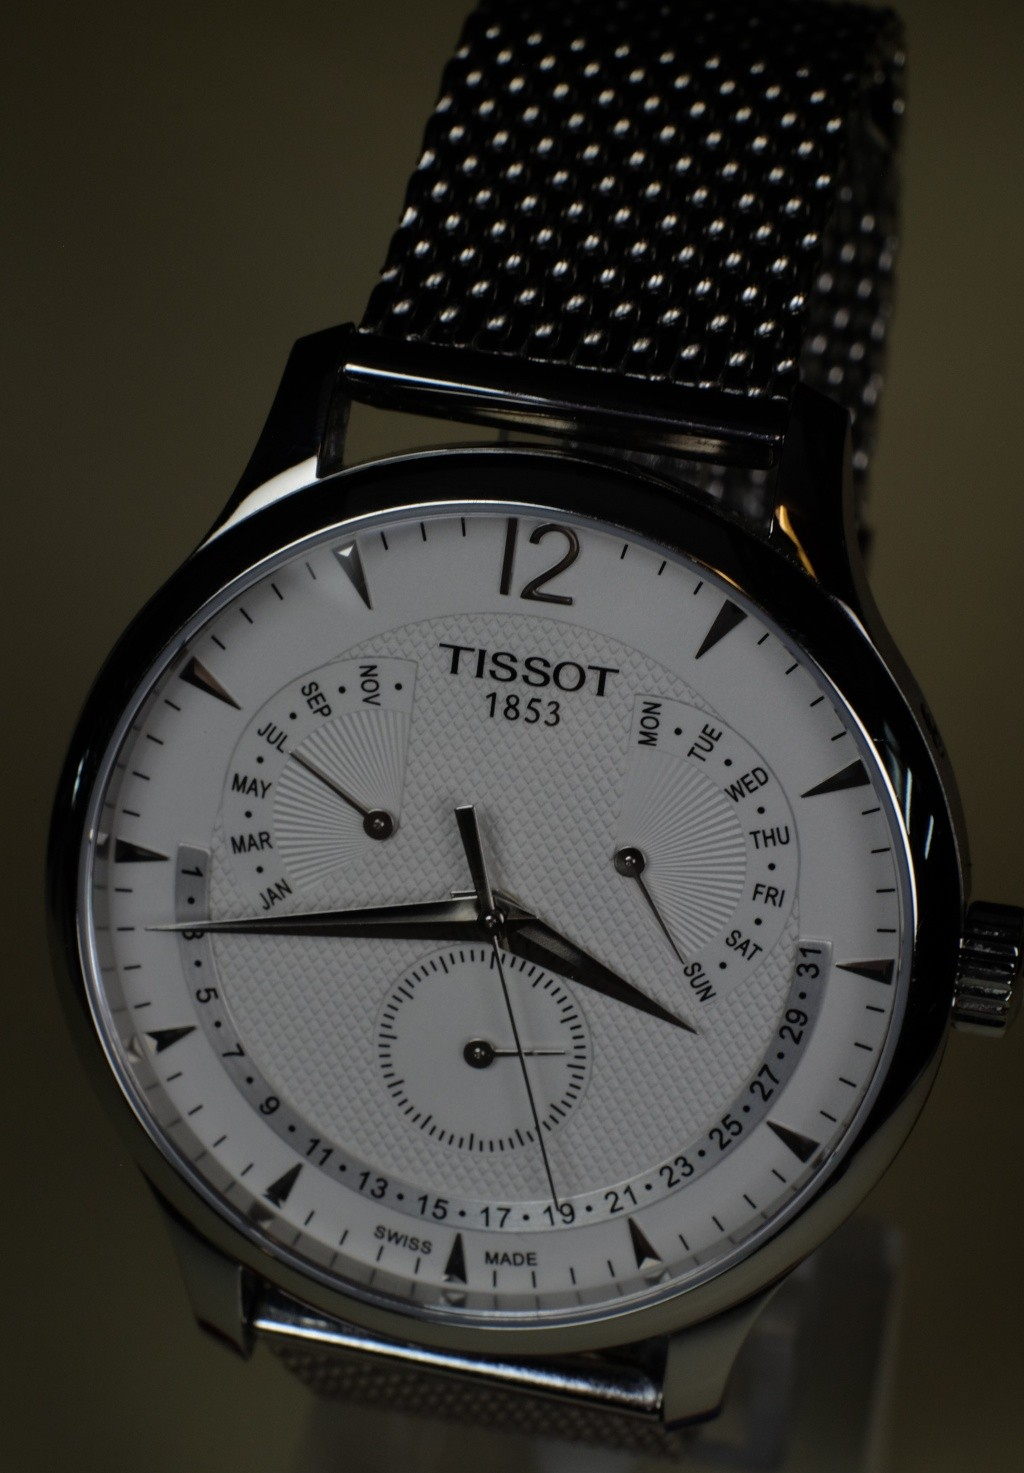 Tissot Owners Post... - Page 2 Dscf9312